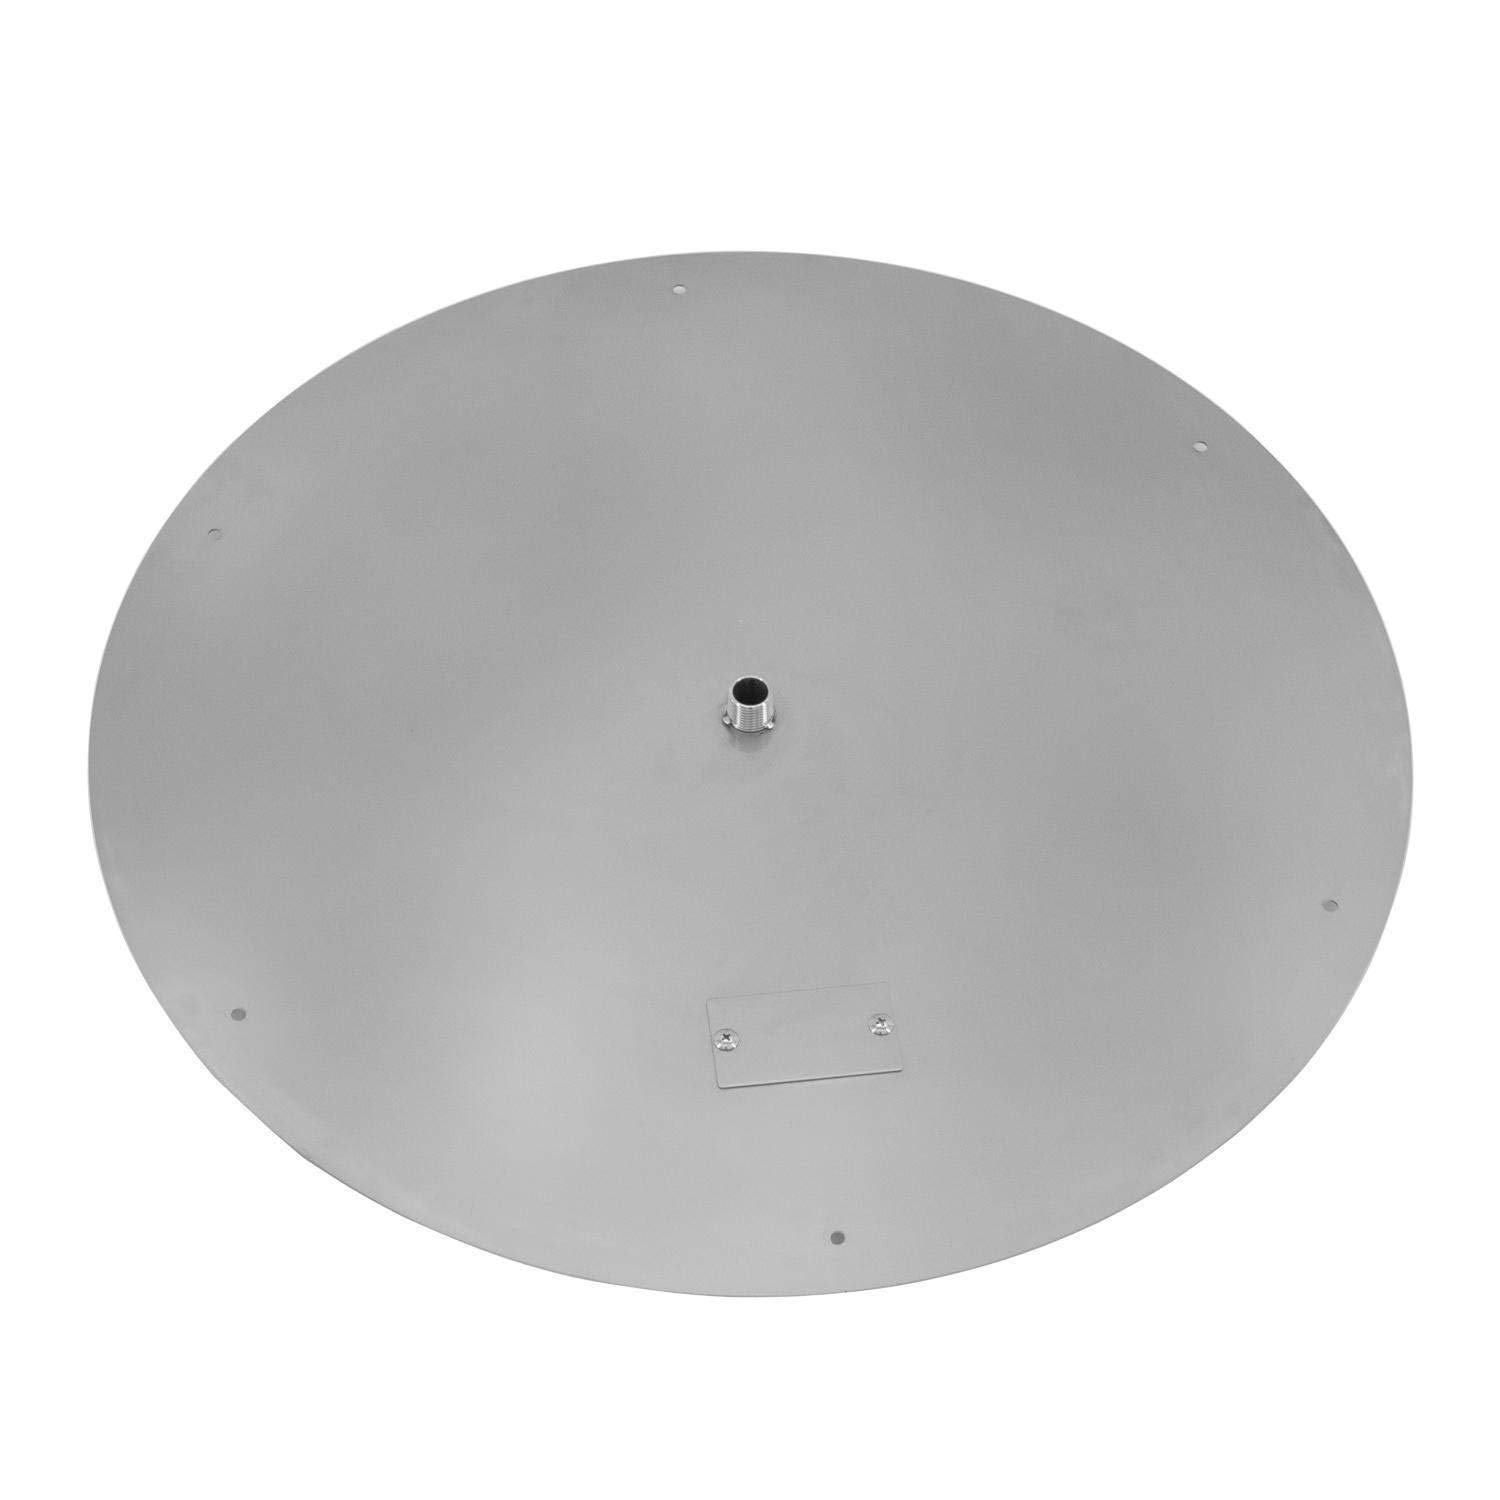 Alpine Flame 36-Inch Flat Round Stainless Fire Pit Burner Pan by Alpine Flame